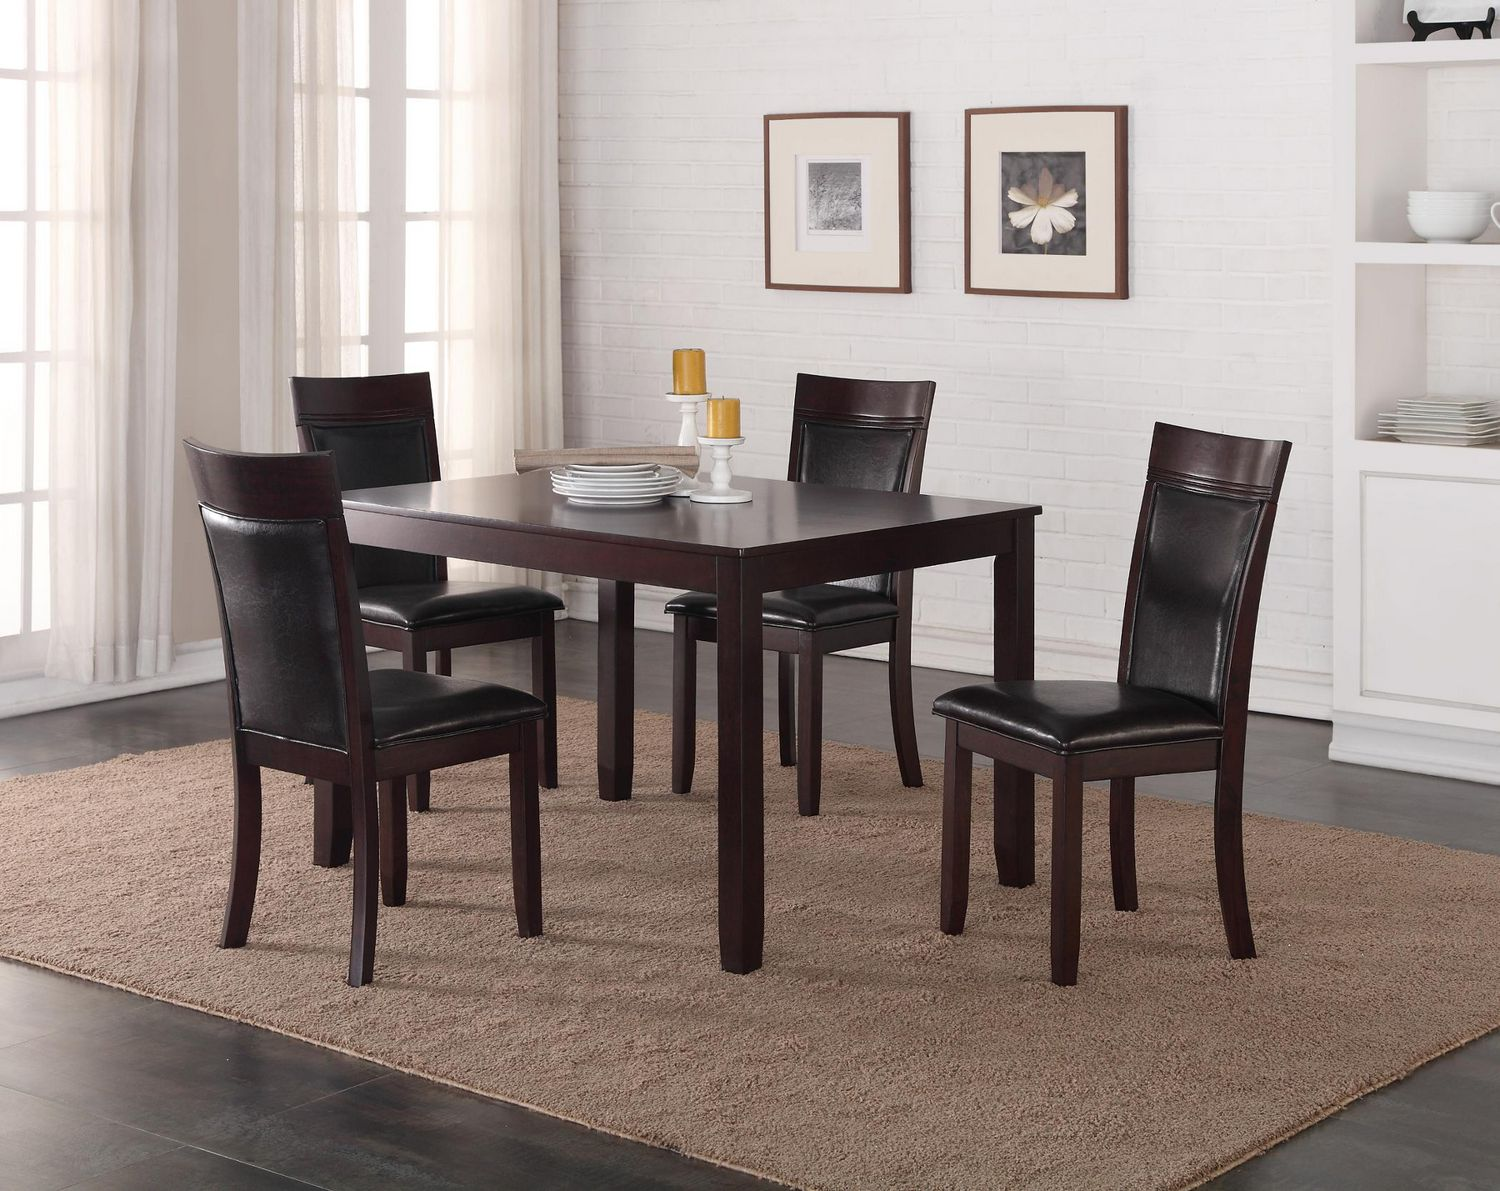 K Living Jenny Solid Wood Dining Table in Espresso